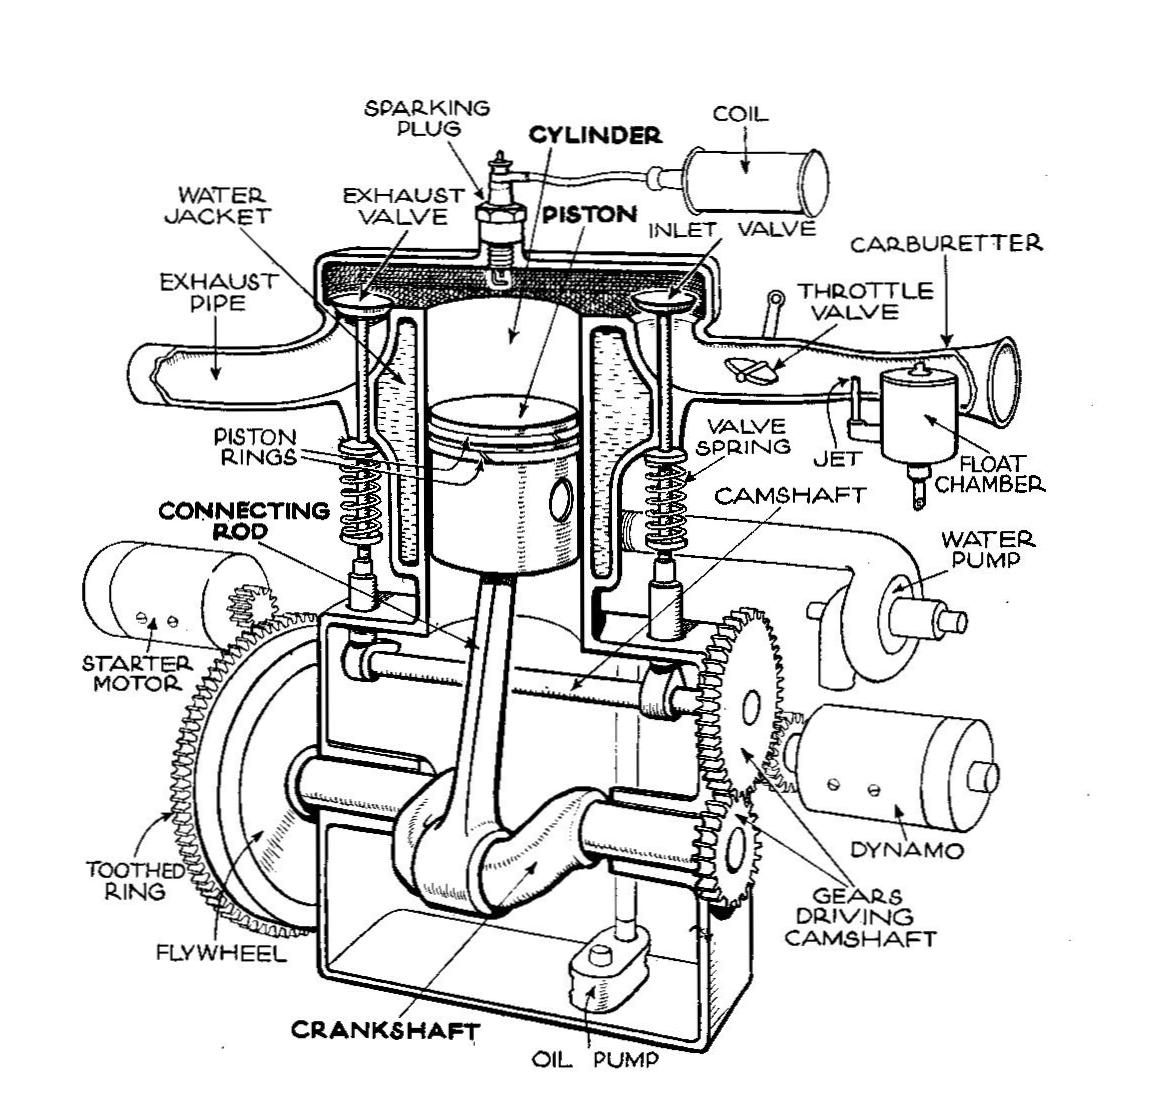 Ohc Engine Diagram Everything About Wiring Honda Gc160 Carburetor Flathead Wikipedia Rh En Org Osi